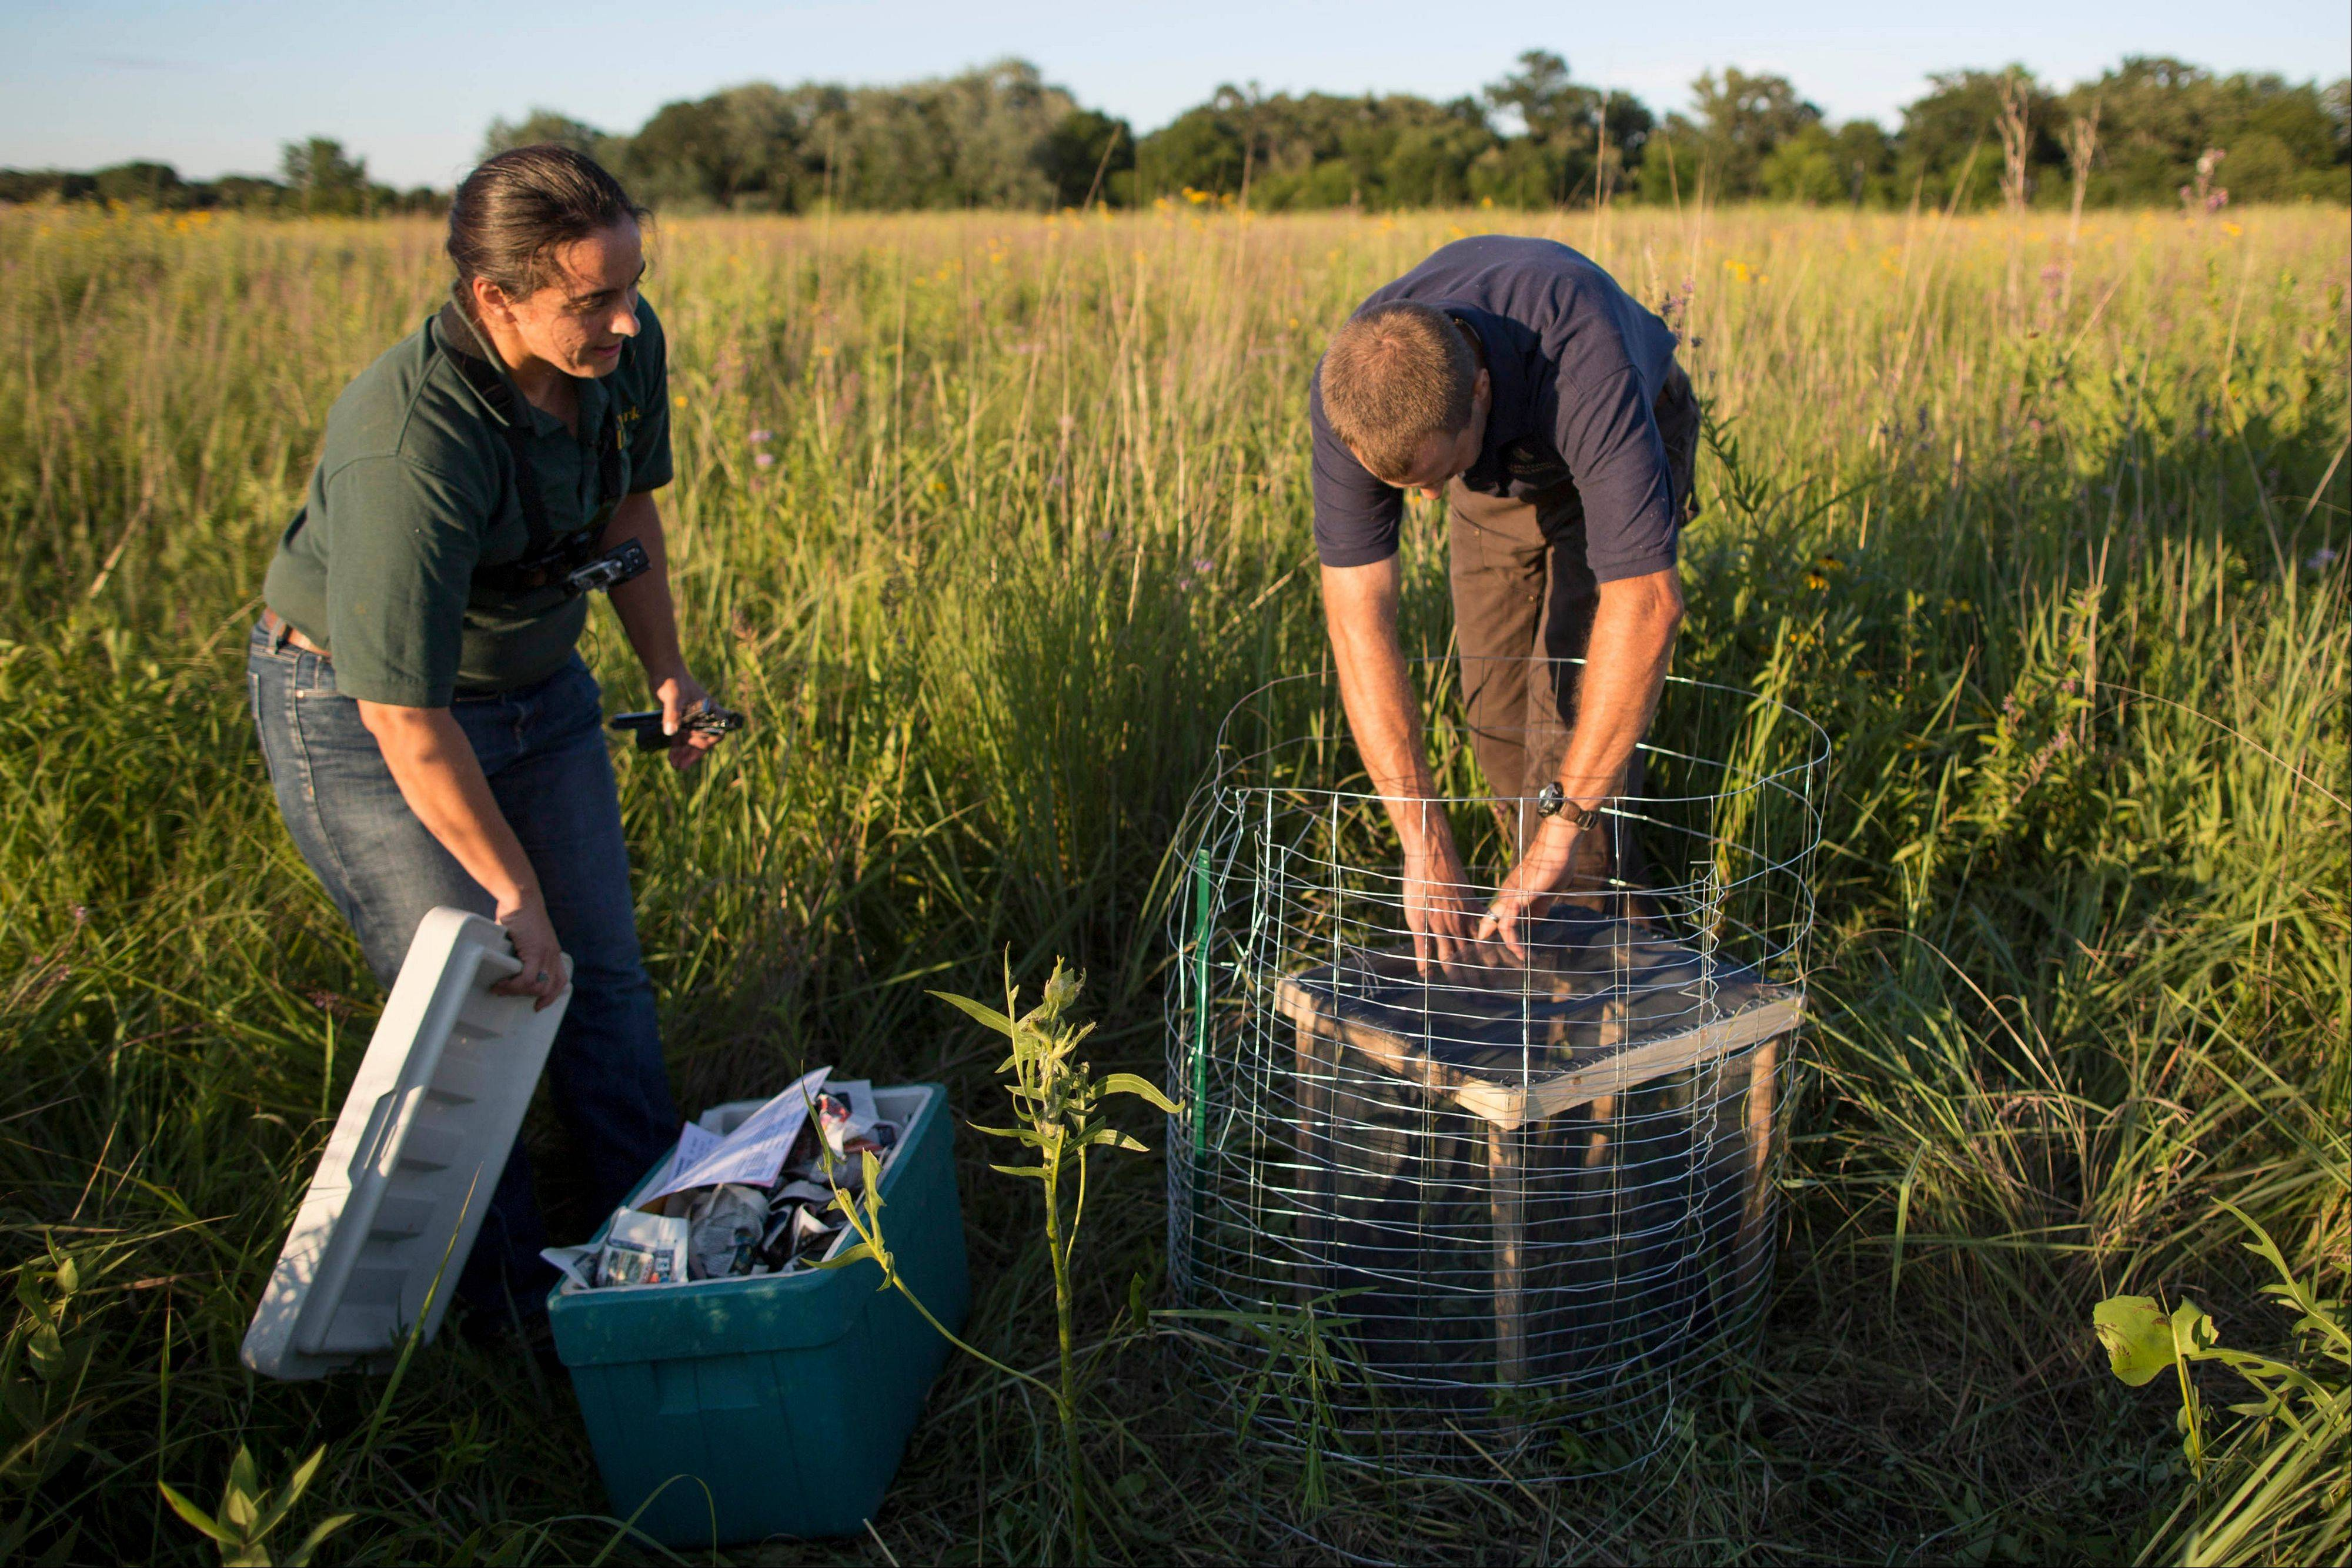 In this July 24, 2013 photograph, left, reintroduction biologist Allison Sacerdote-Velat, and wildlife biologist for Lake County Forrest Preserve Tim Preuss prepare to release a meadow jumping mouse at Rollins Savanna in Grayslake, Ill. Scientists at Lincoln Park Zoo are raising meadow jumping mice and and releasing them into the wild in an effort to help restore dwindling Midwestern prairies.